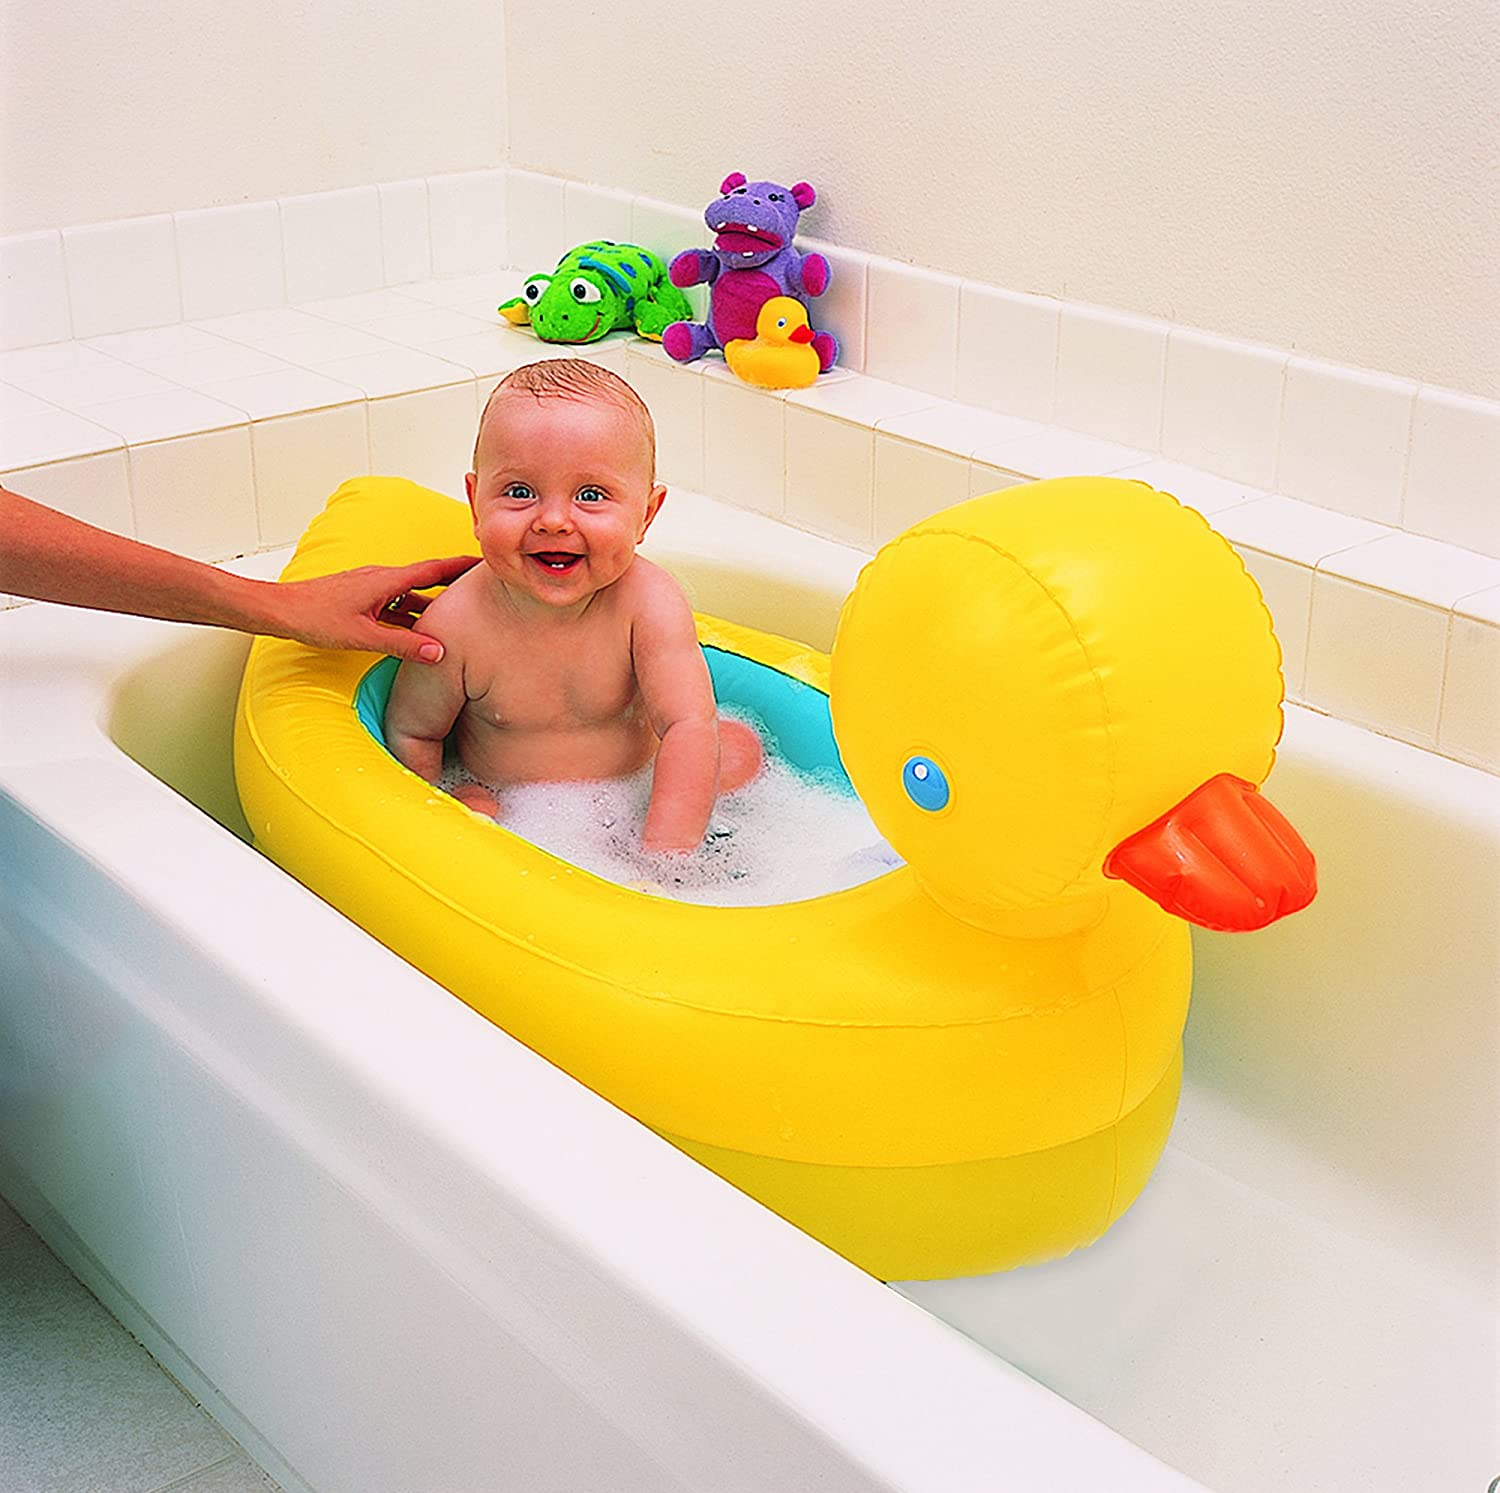 munchkin hot inflatable duck tub fun baby bath toy new ebay. Black Bedroom Furniture Sets. Home Design Ideas